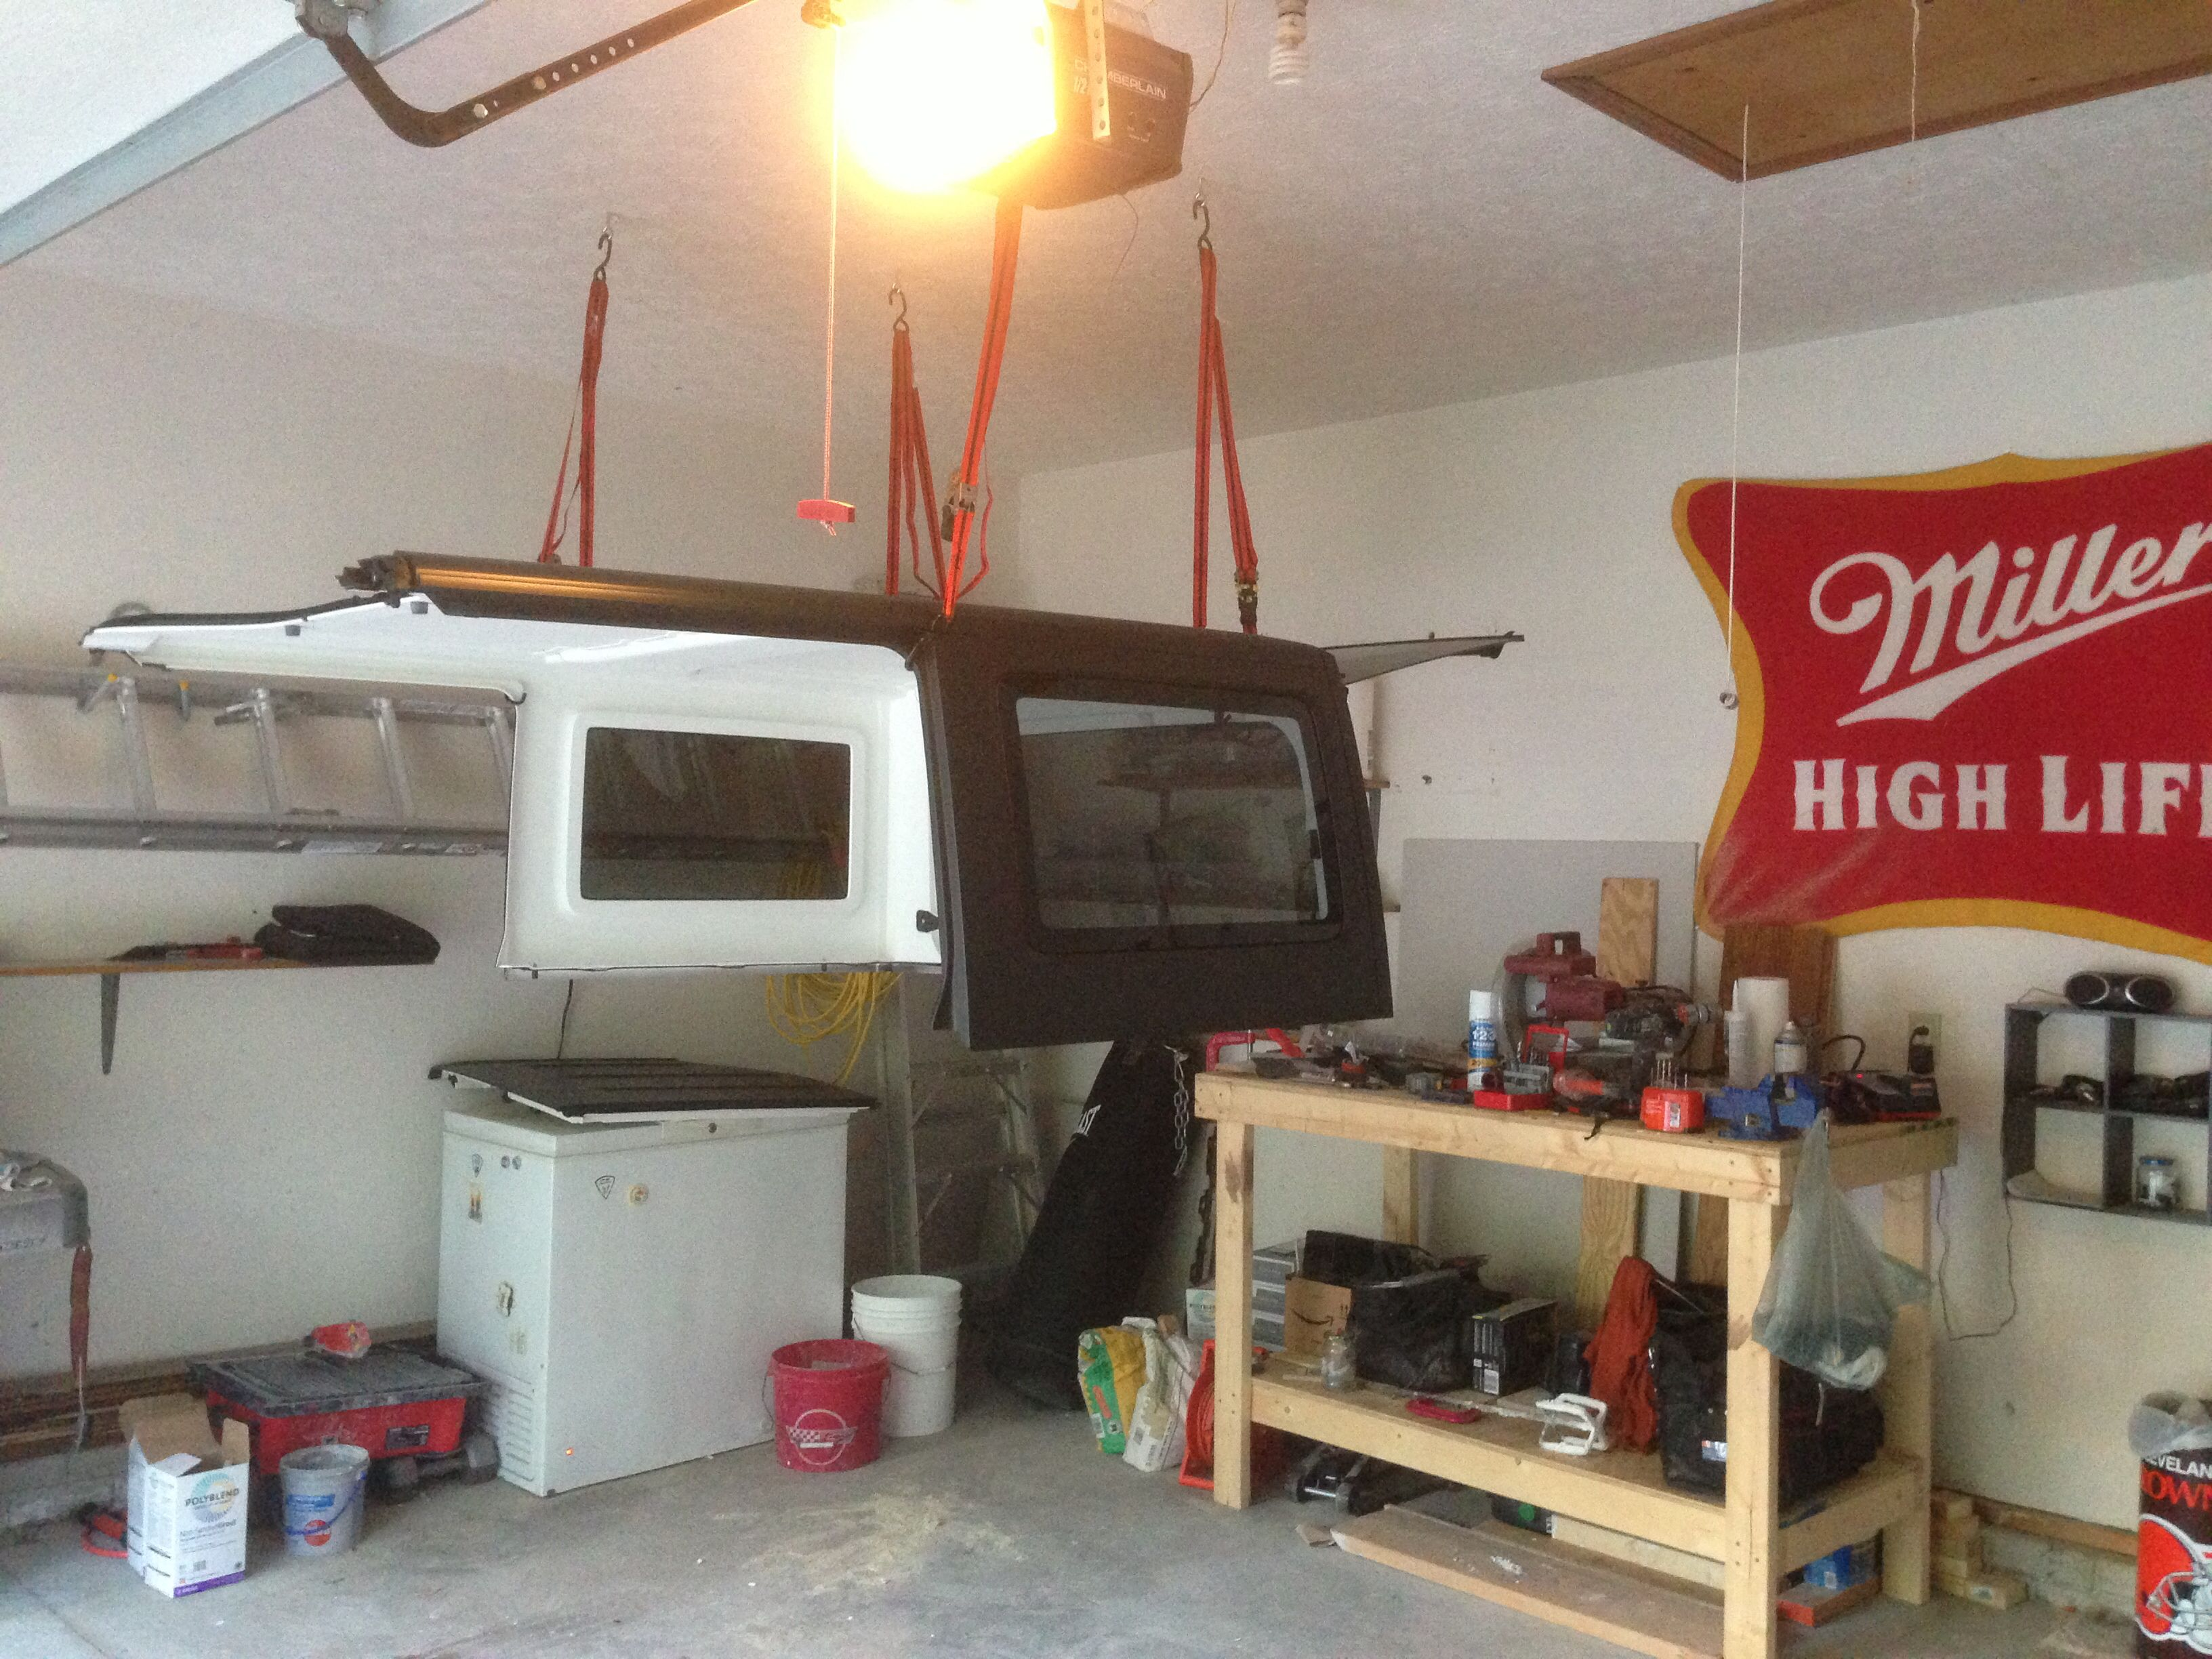 Ratcheting Straps Garage Set Up To Remove Jeep Wrangler Hard Top